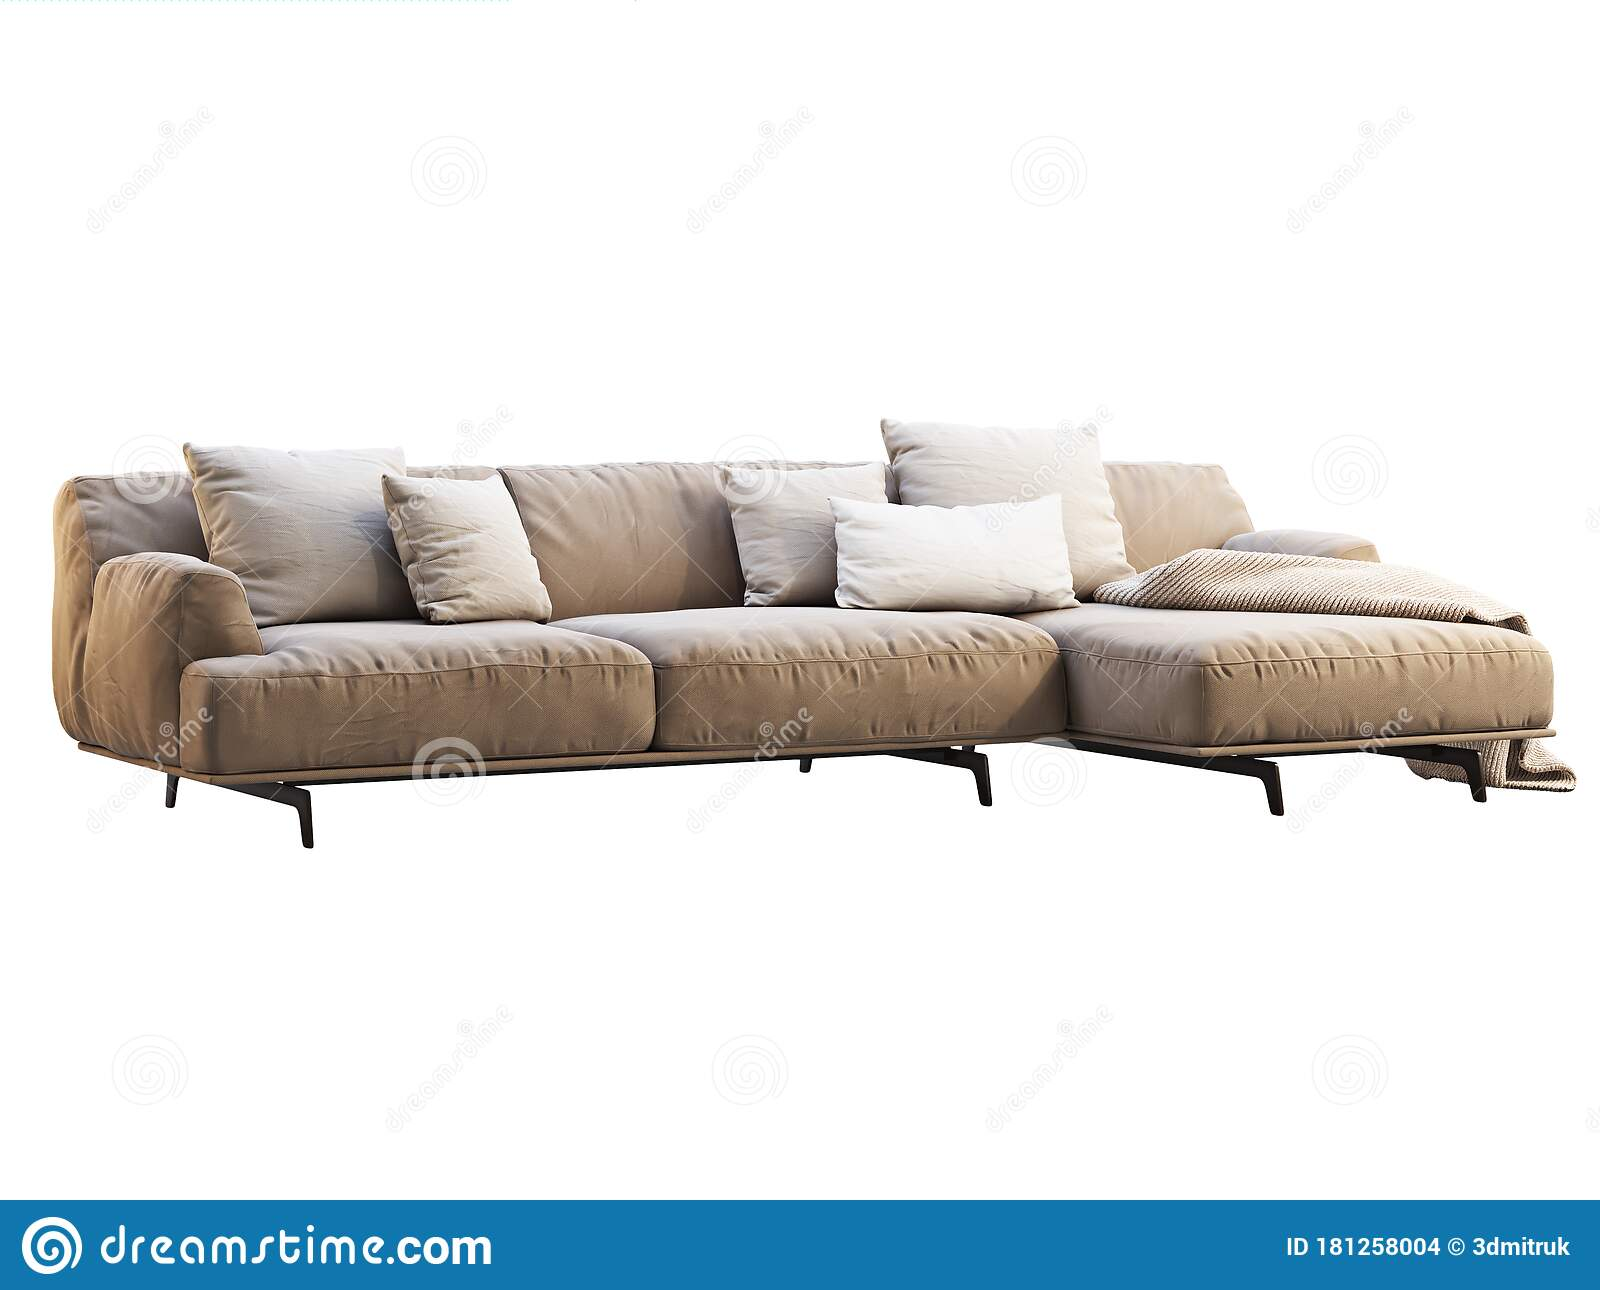 modern beige chaise lounge fabric sofa with pillows and knitted blanket 3d render stock illustration illustration of chaise background 181258004